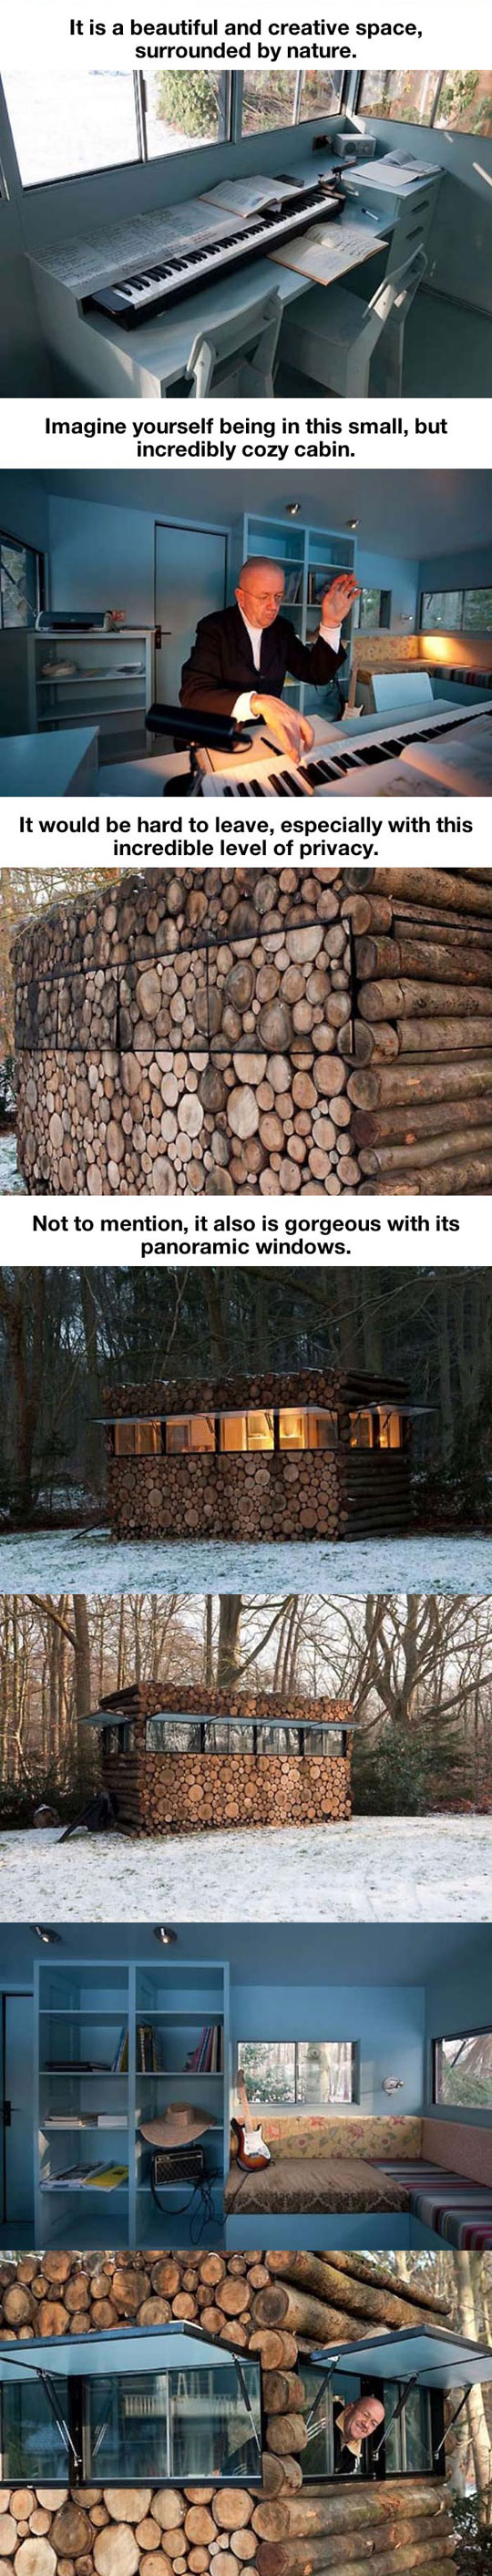 cool-cabin-forest-logs-concealed-snow-music